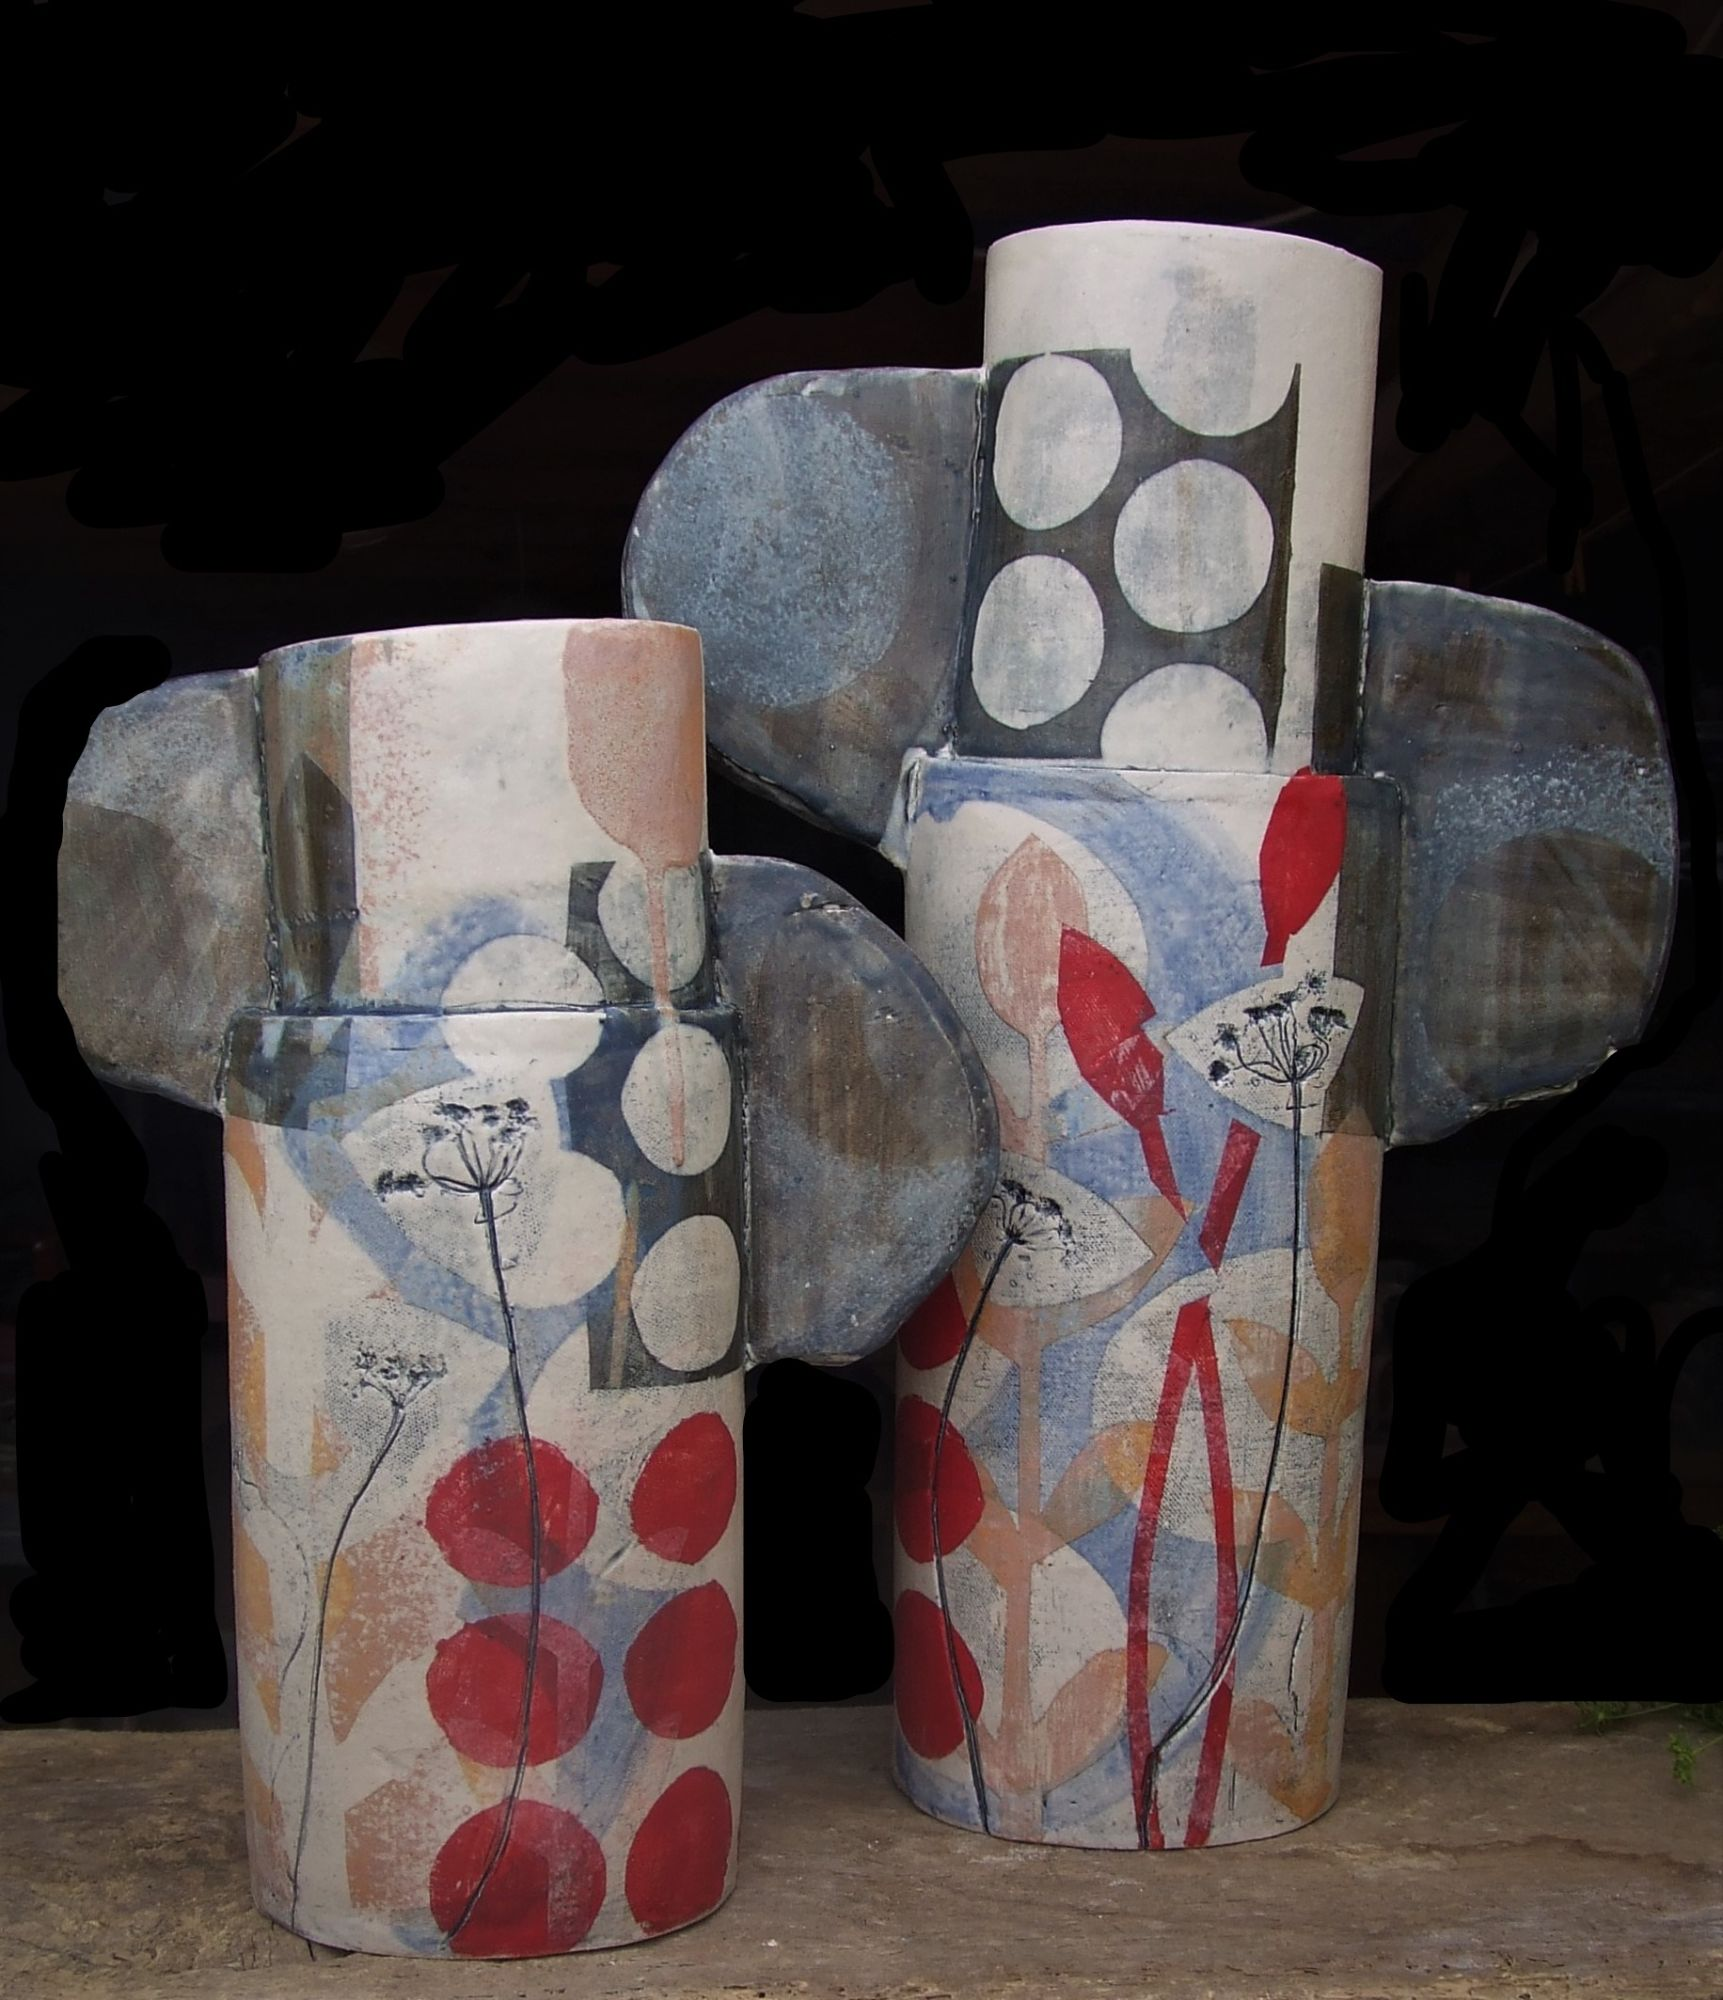 2 large red totems with spots